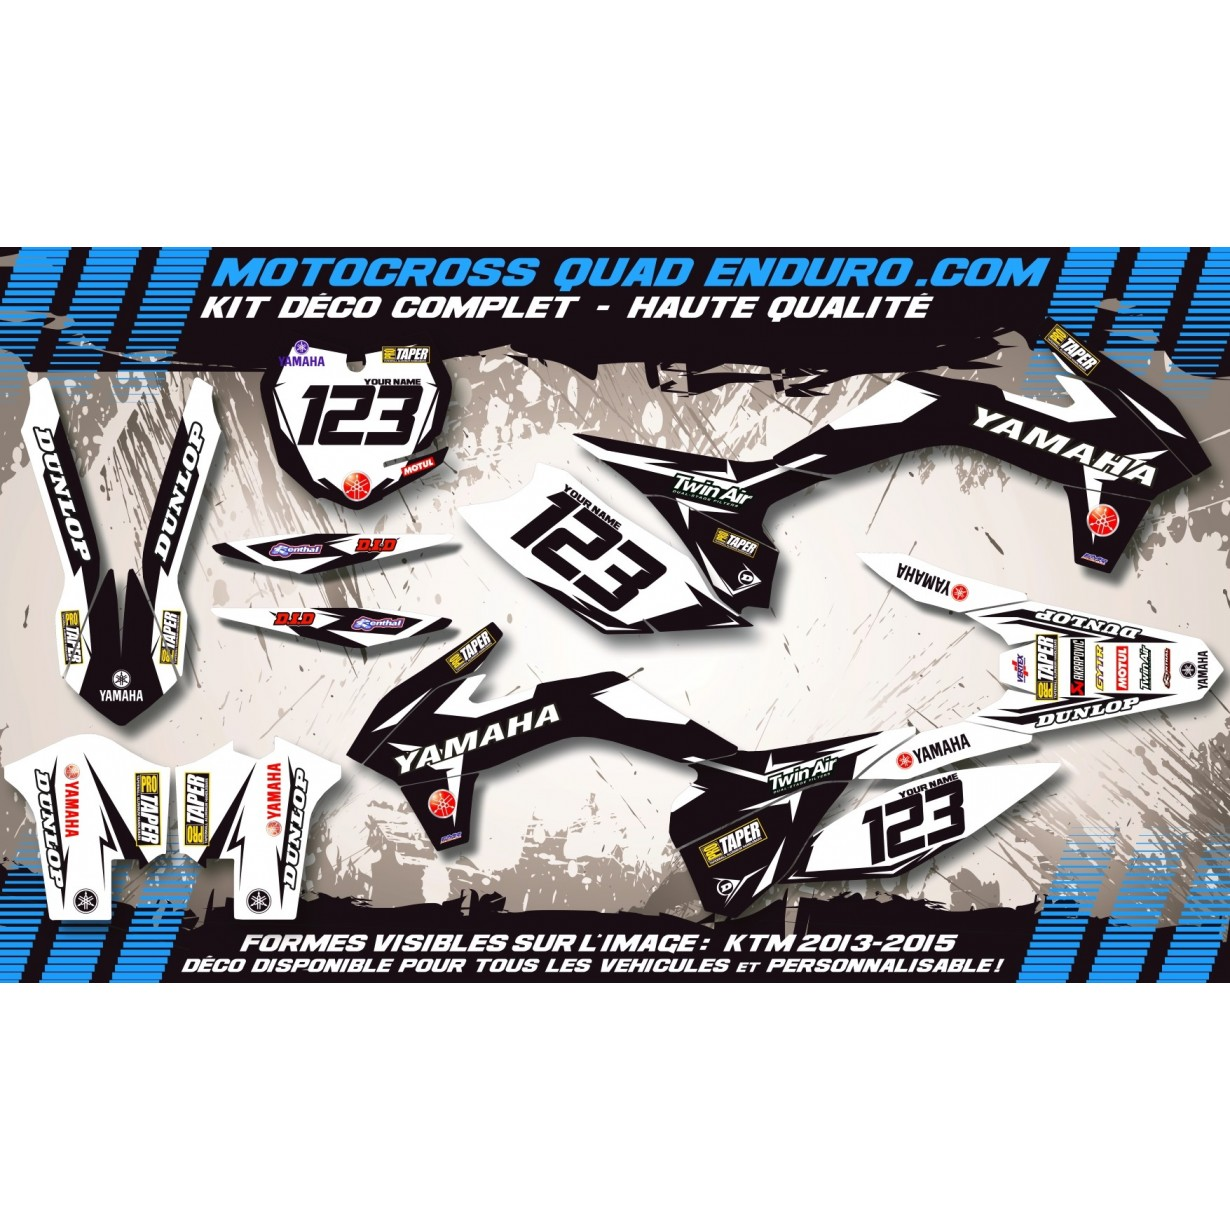 KIT DÉCO Perso 700 RAPTOR 13-18 Quad Factory Black Edition MA10EB